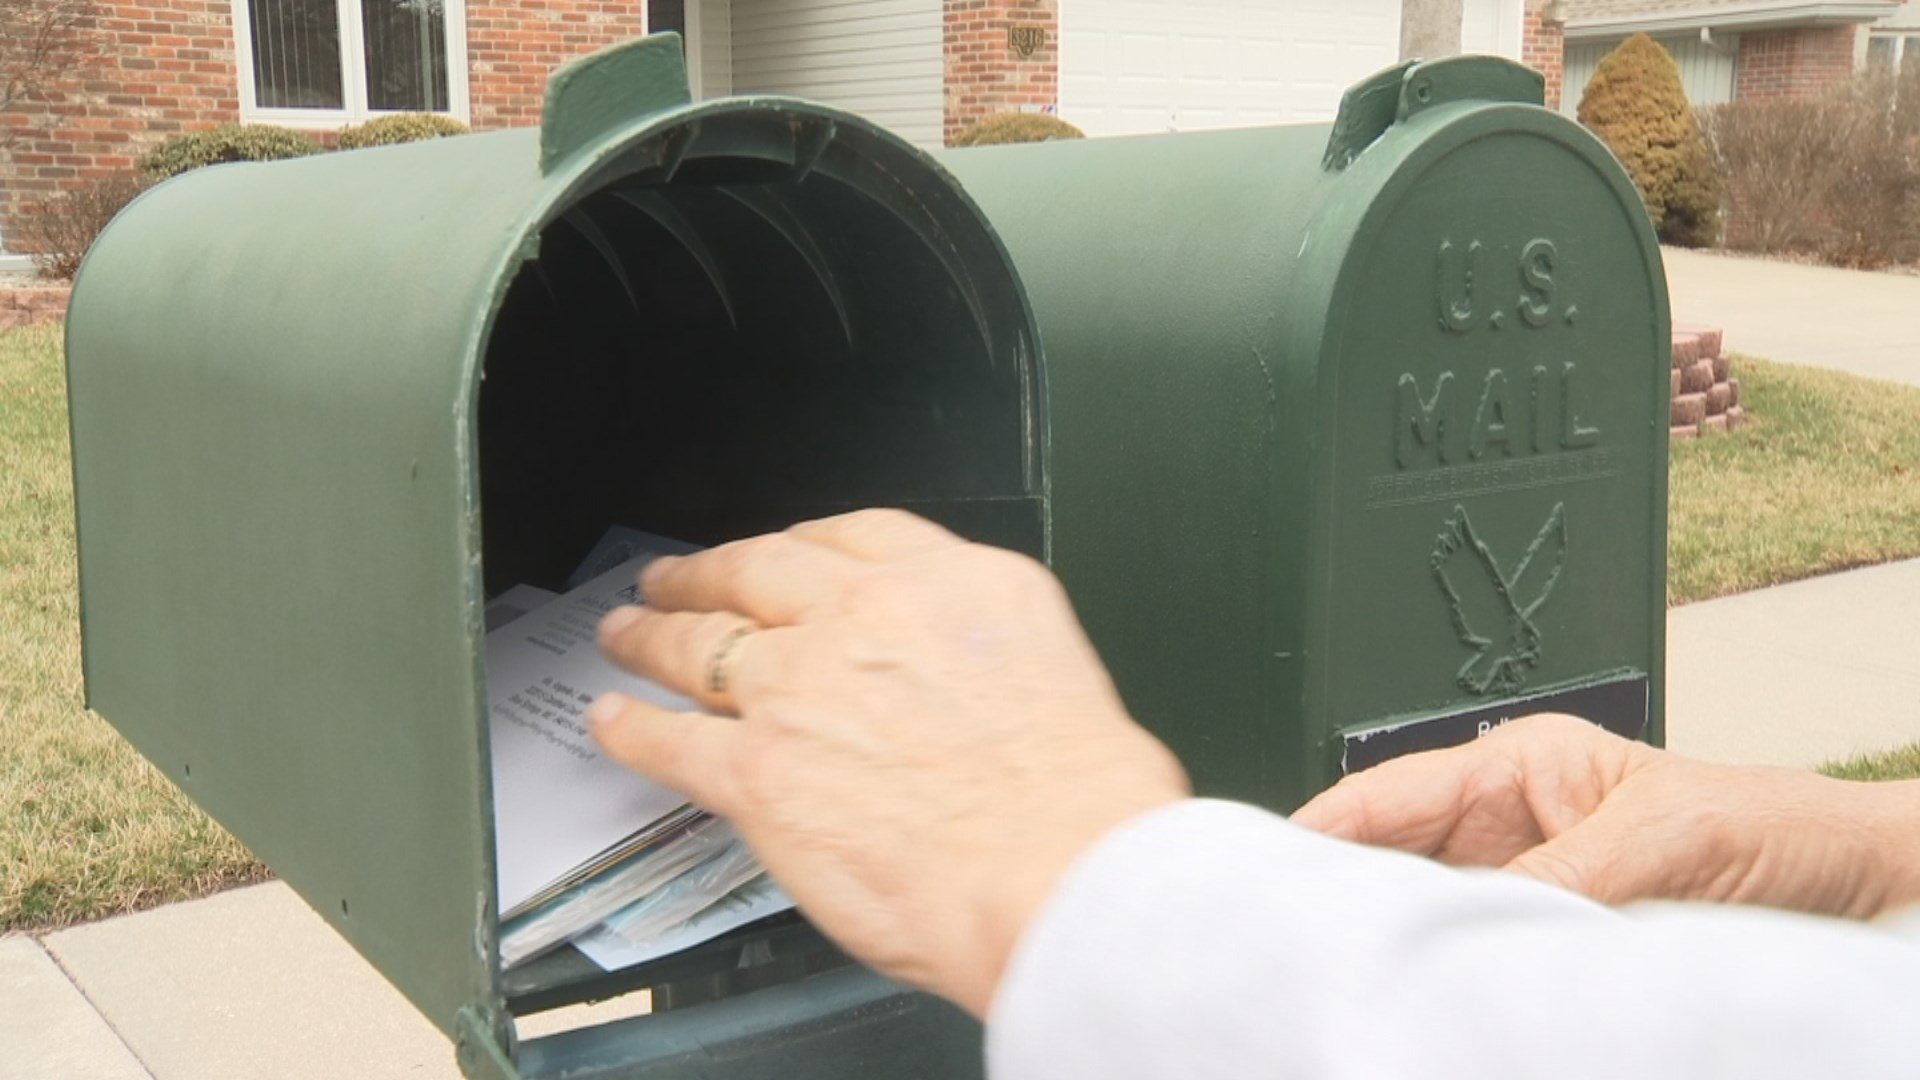 Independence neighborhood wants mail collection box after targeted by thieves